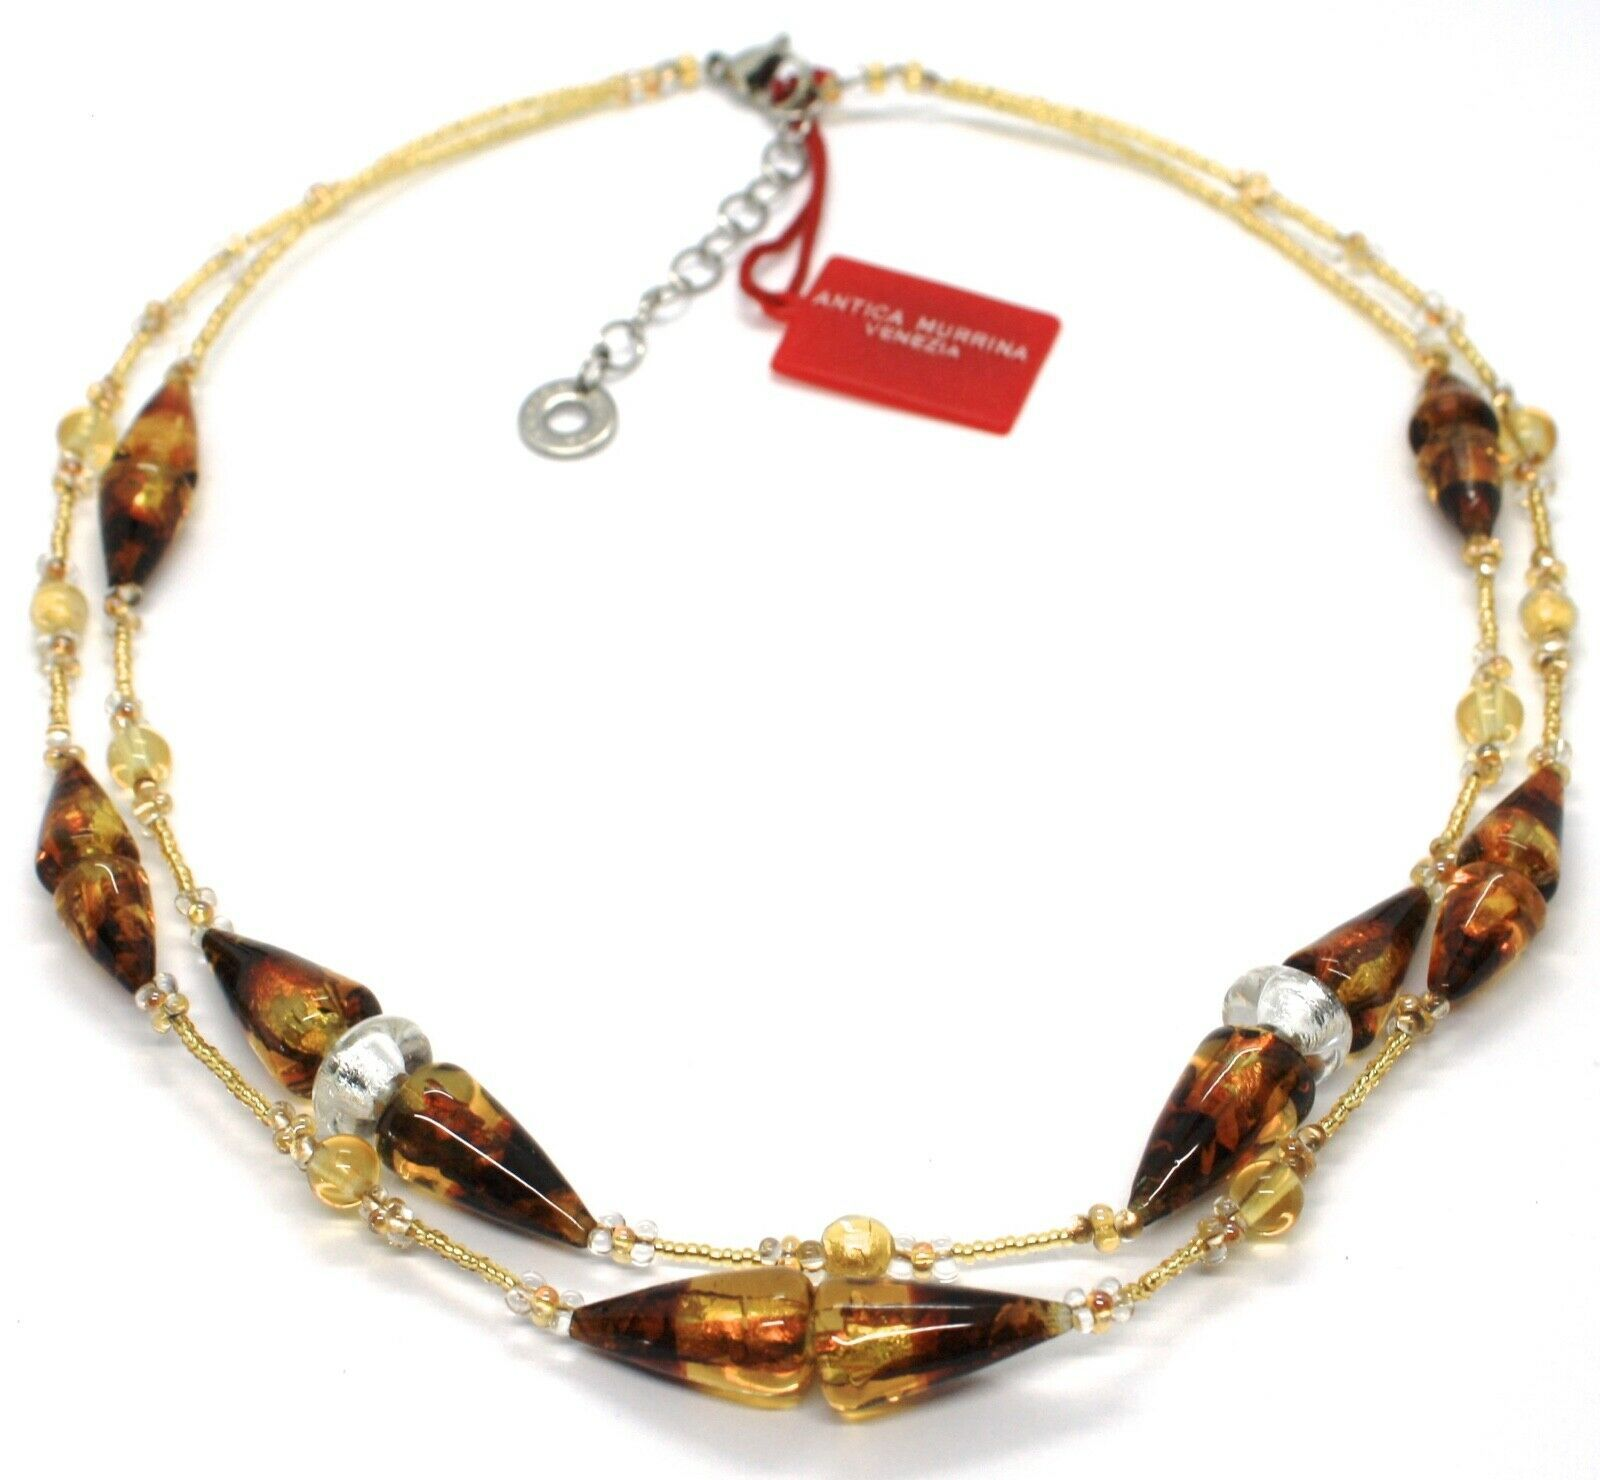 Necklace Antique Murrina,CO767A10,Cones,Colour Amber,Yellow,Two Wires,Murano